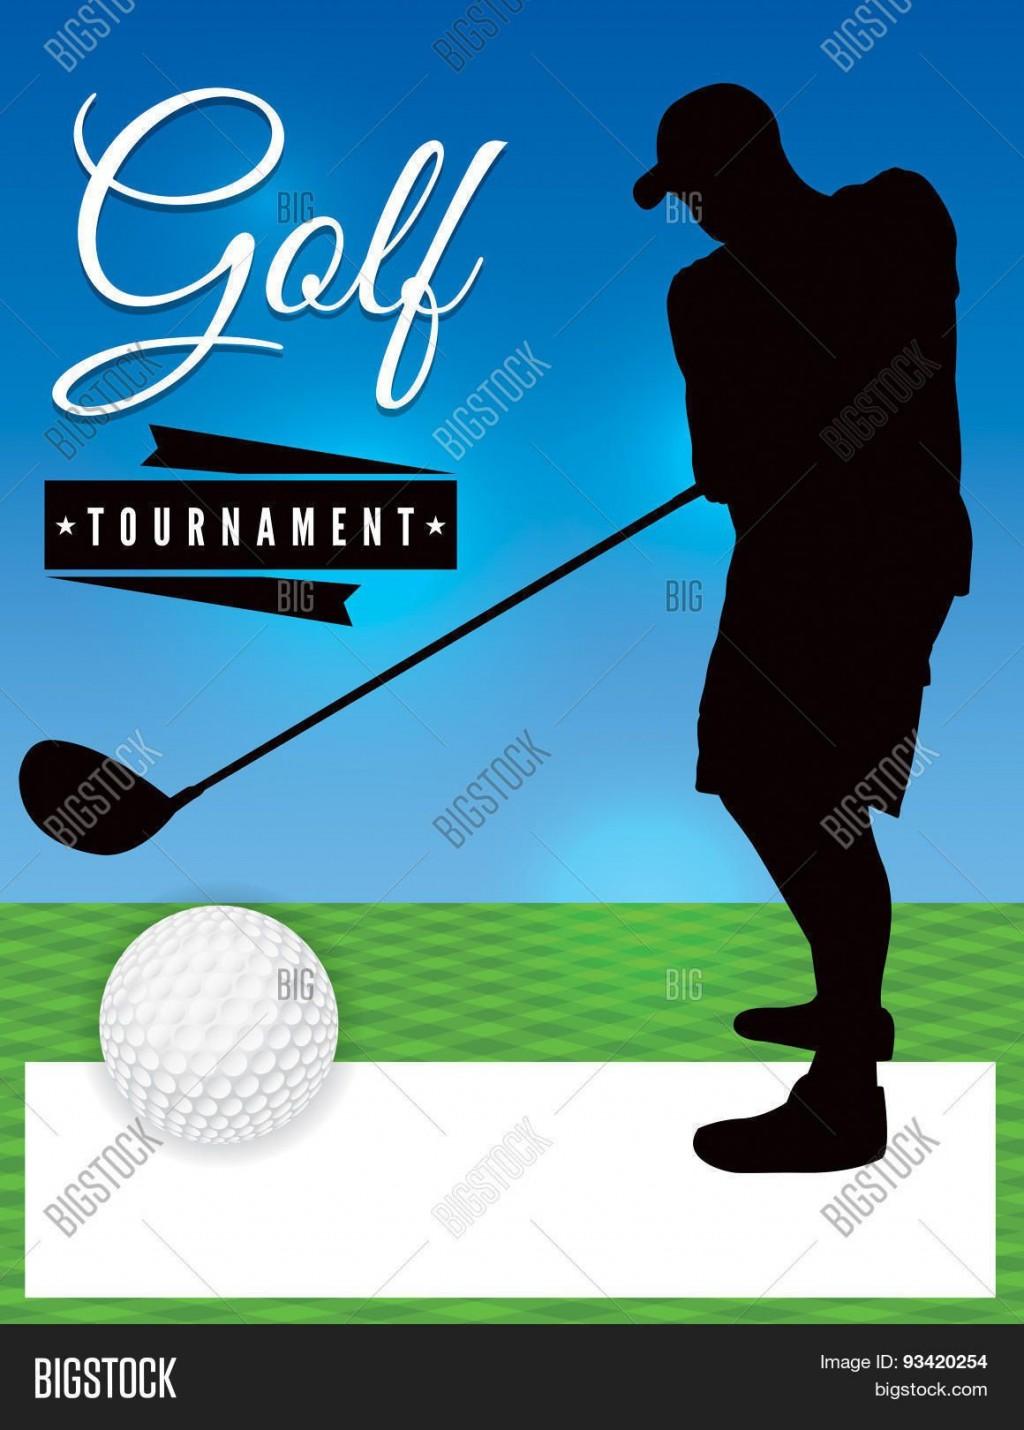 003 Stupendou Free Charity Golf Tournament Flyer Template Design Large